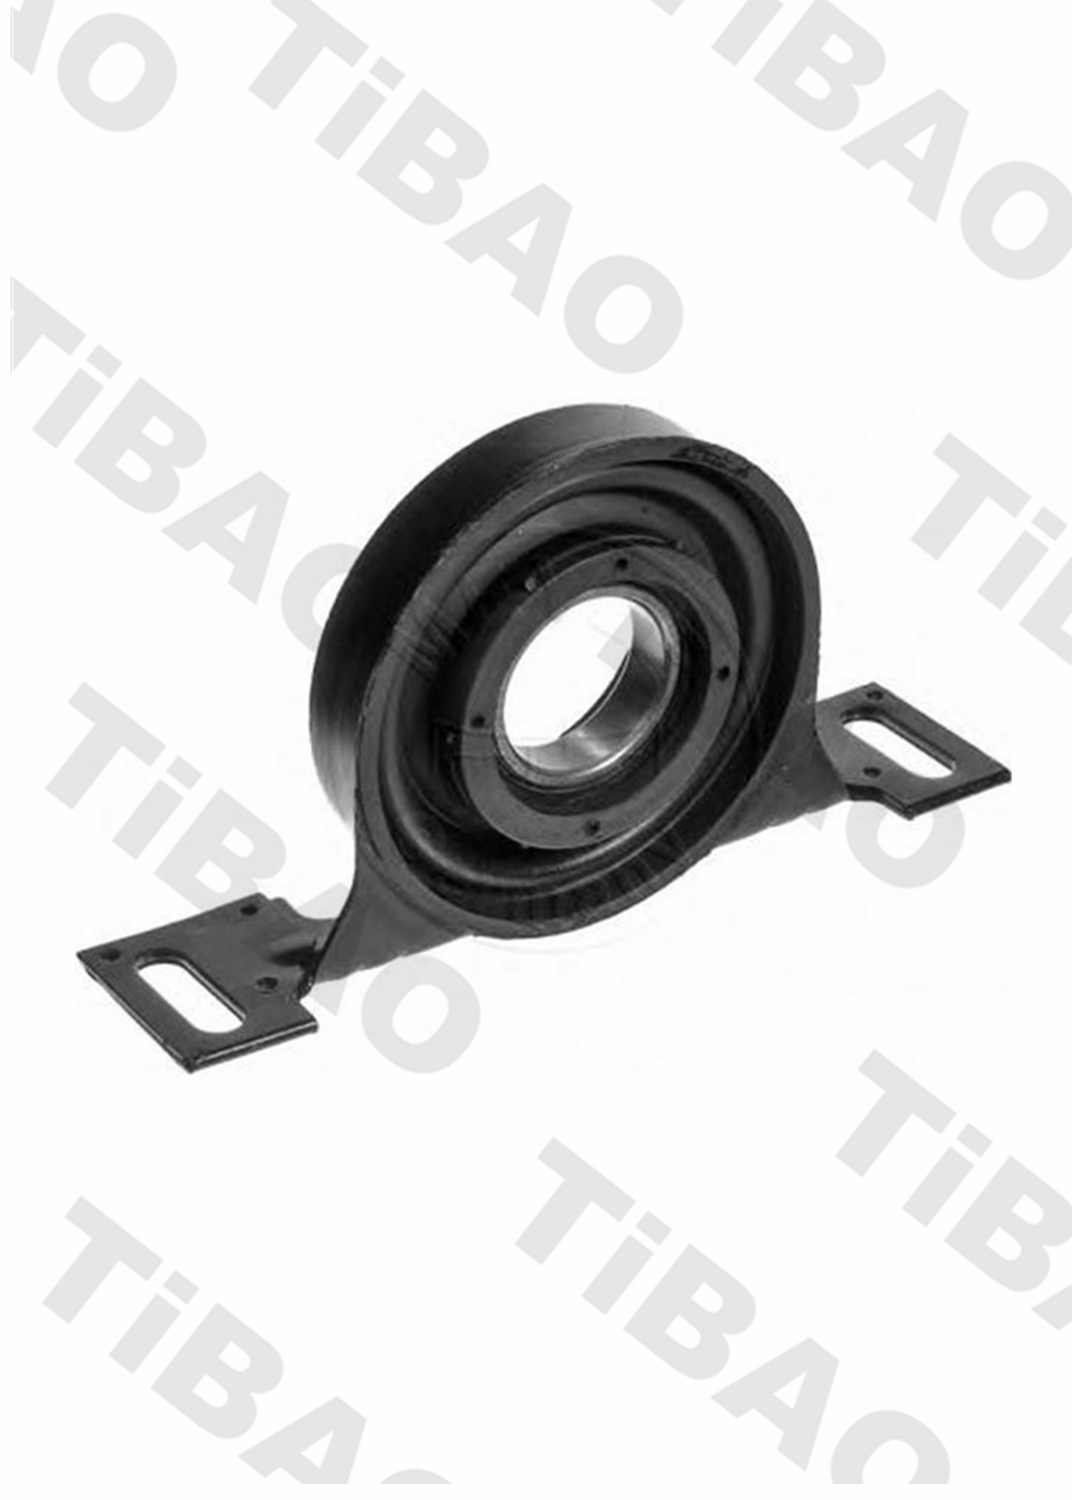 TiBAO AUTO Parts Center Bearing for BMW E38 OEM 26 12 1 227 997